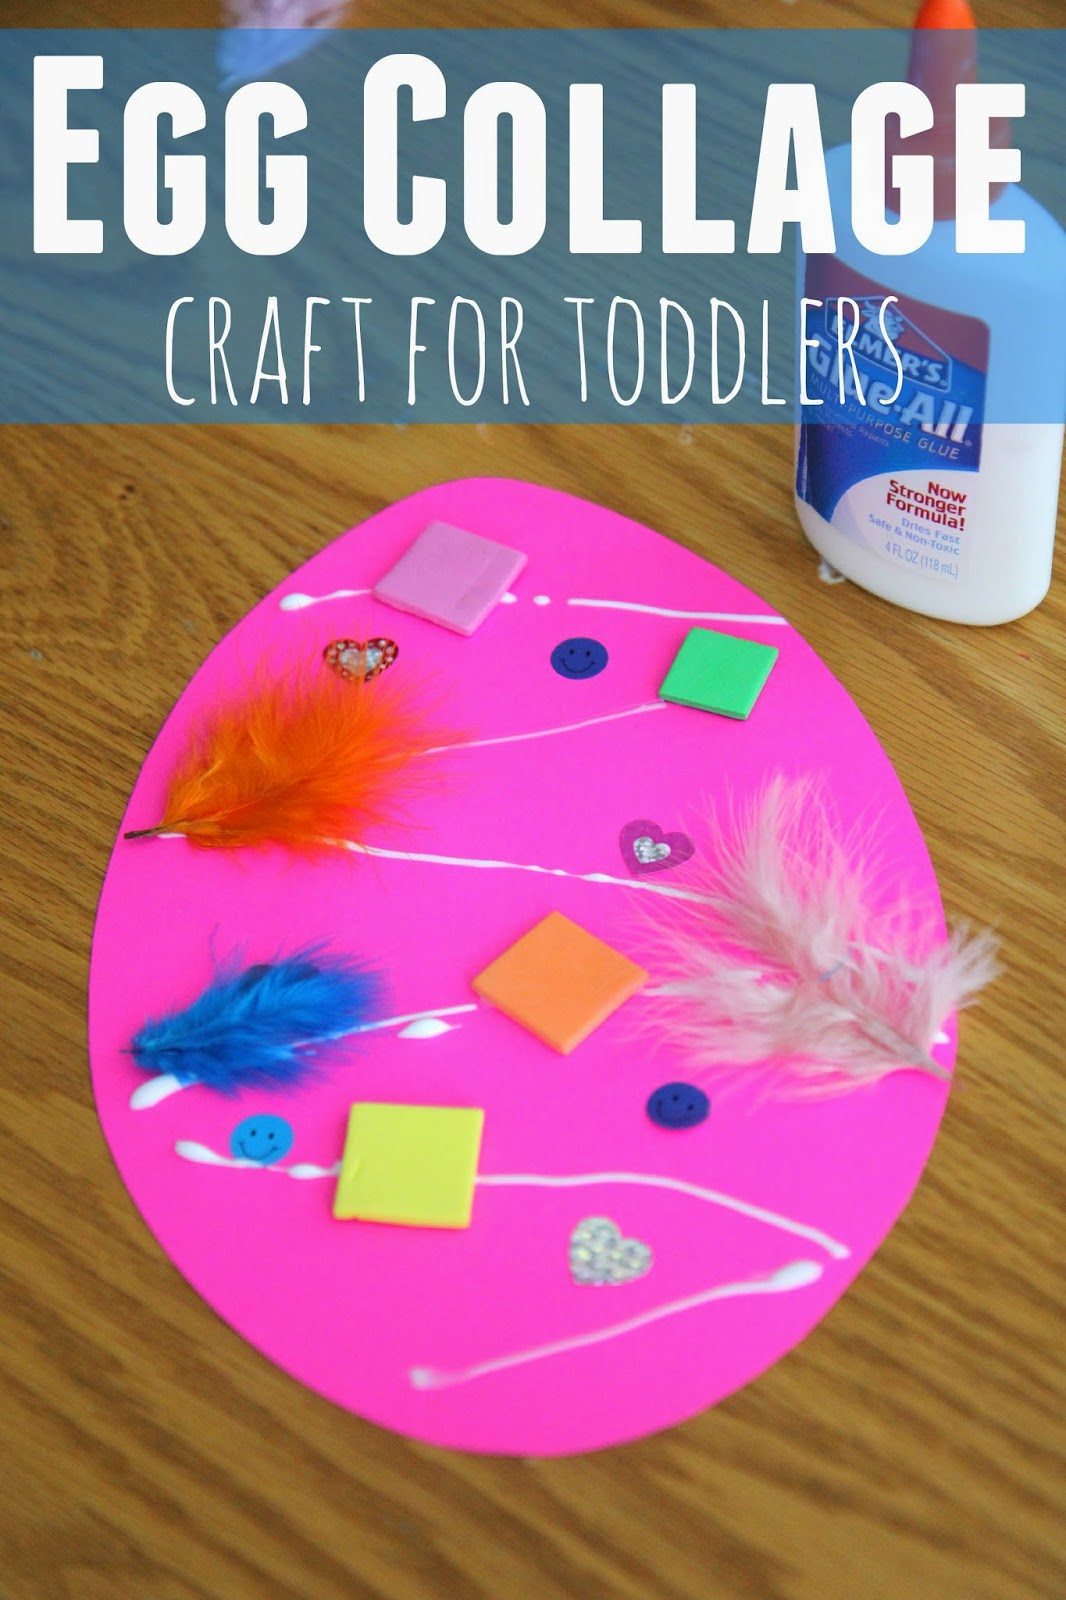 Our Easter Egg Collage Craft Is Super Easy For Toddlers On Up I Even Like To Make My Own Sitting Next The Kids Because They Are So Fun